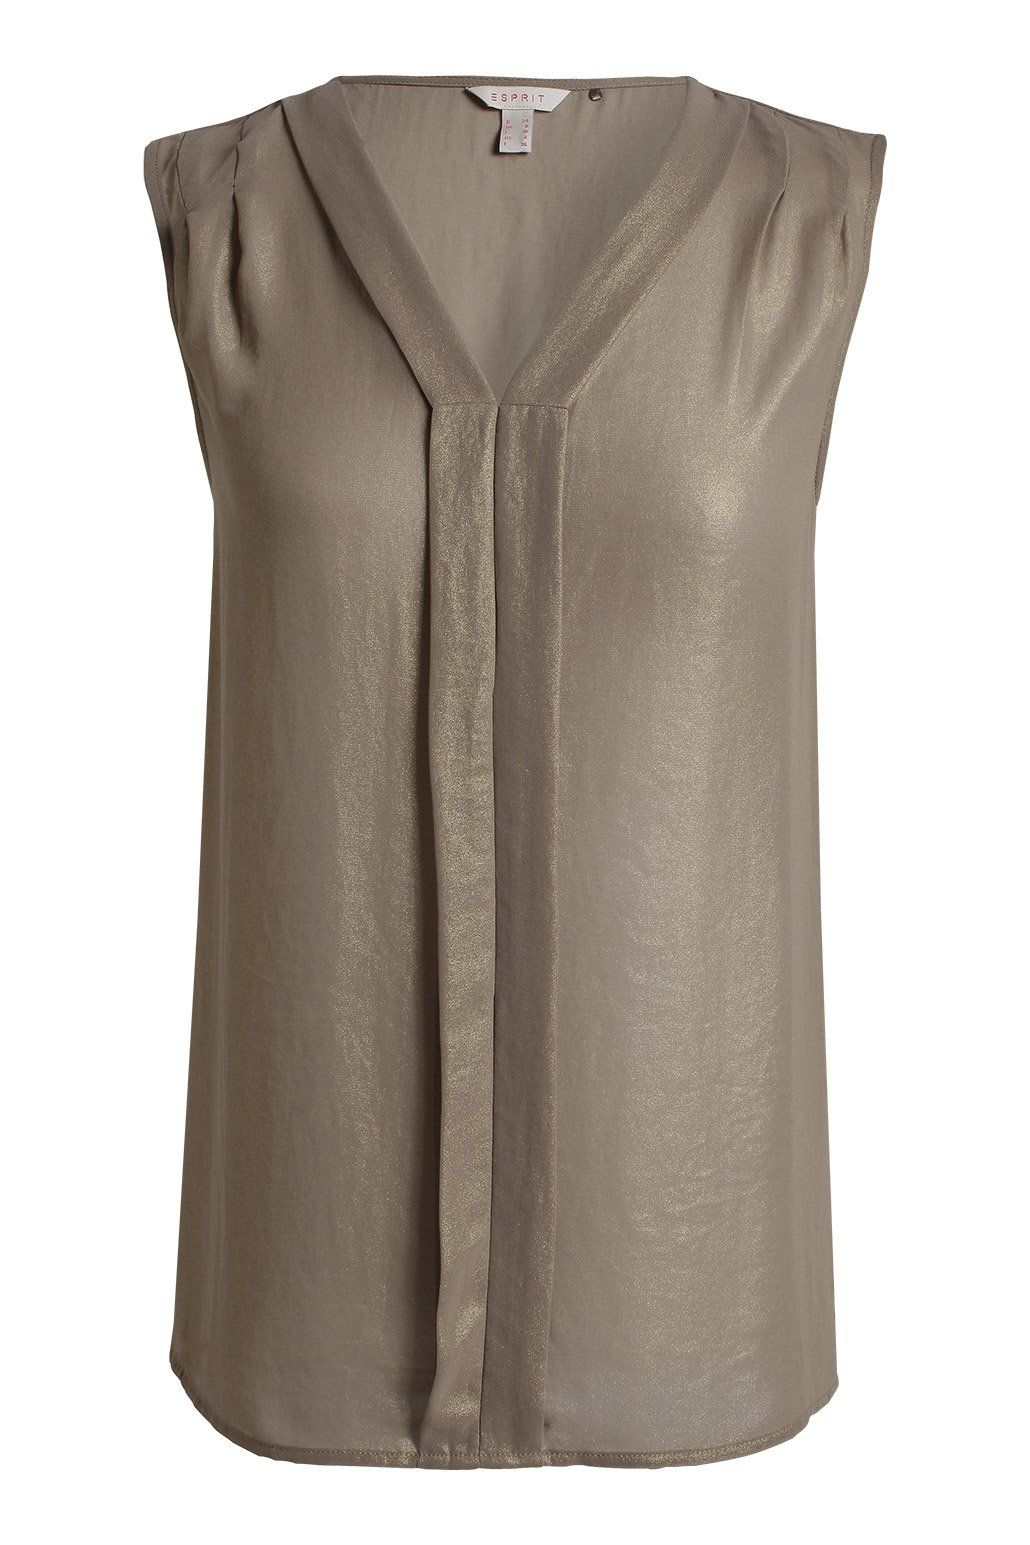 Glittering chiffon - nice style but I don't like the colour. Grey or black  would be nice or even a nice purple!